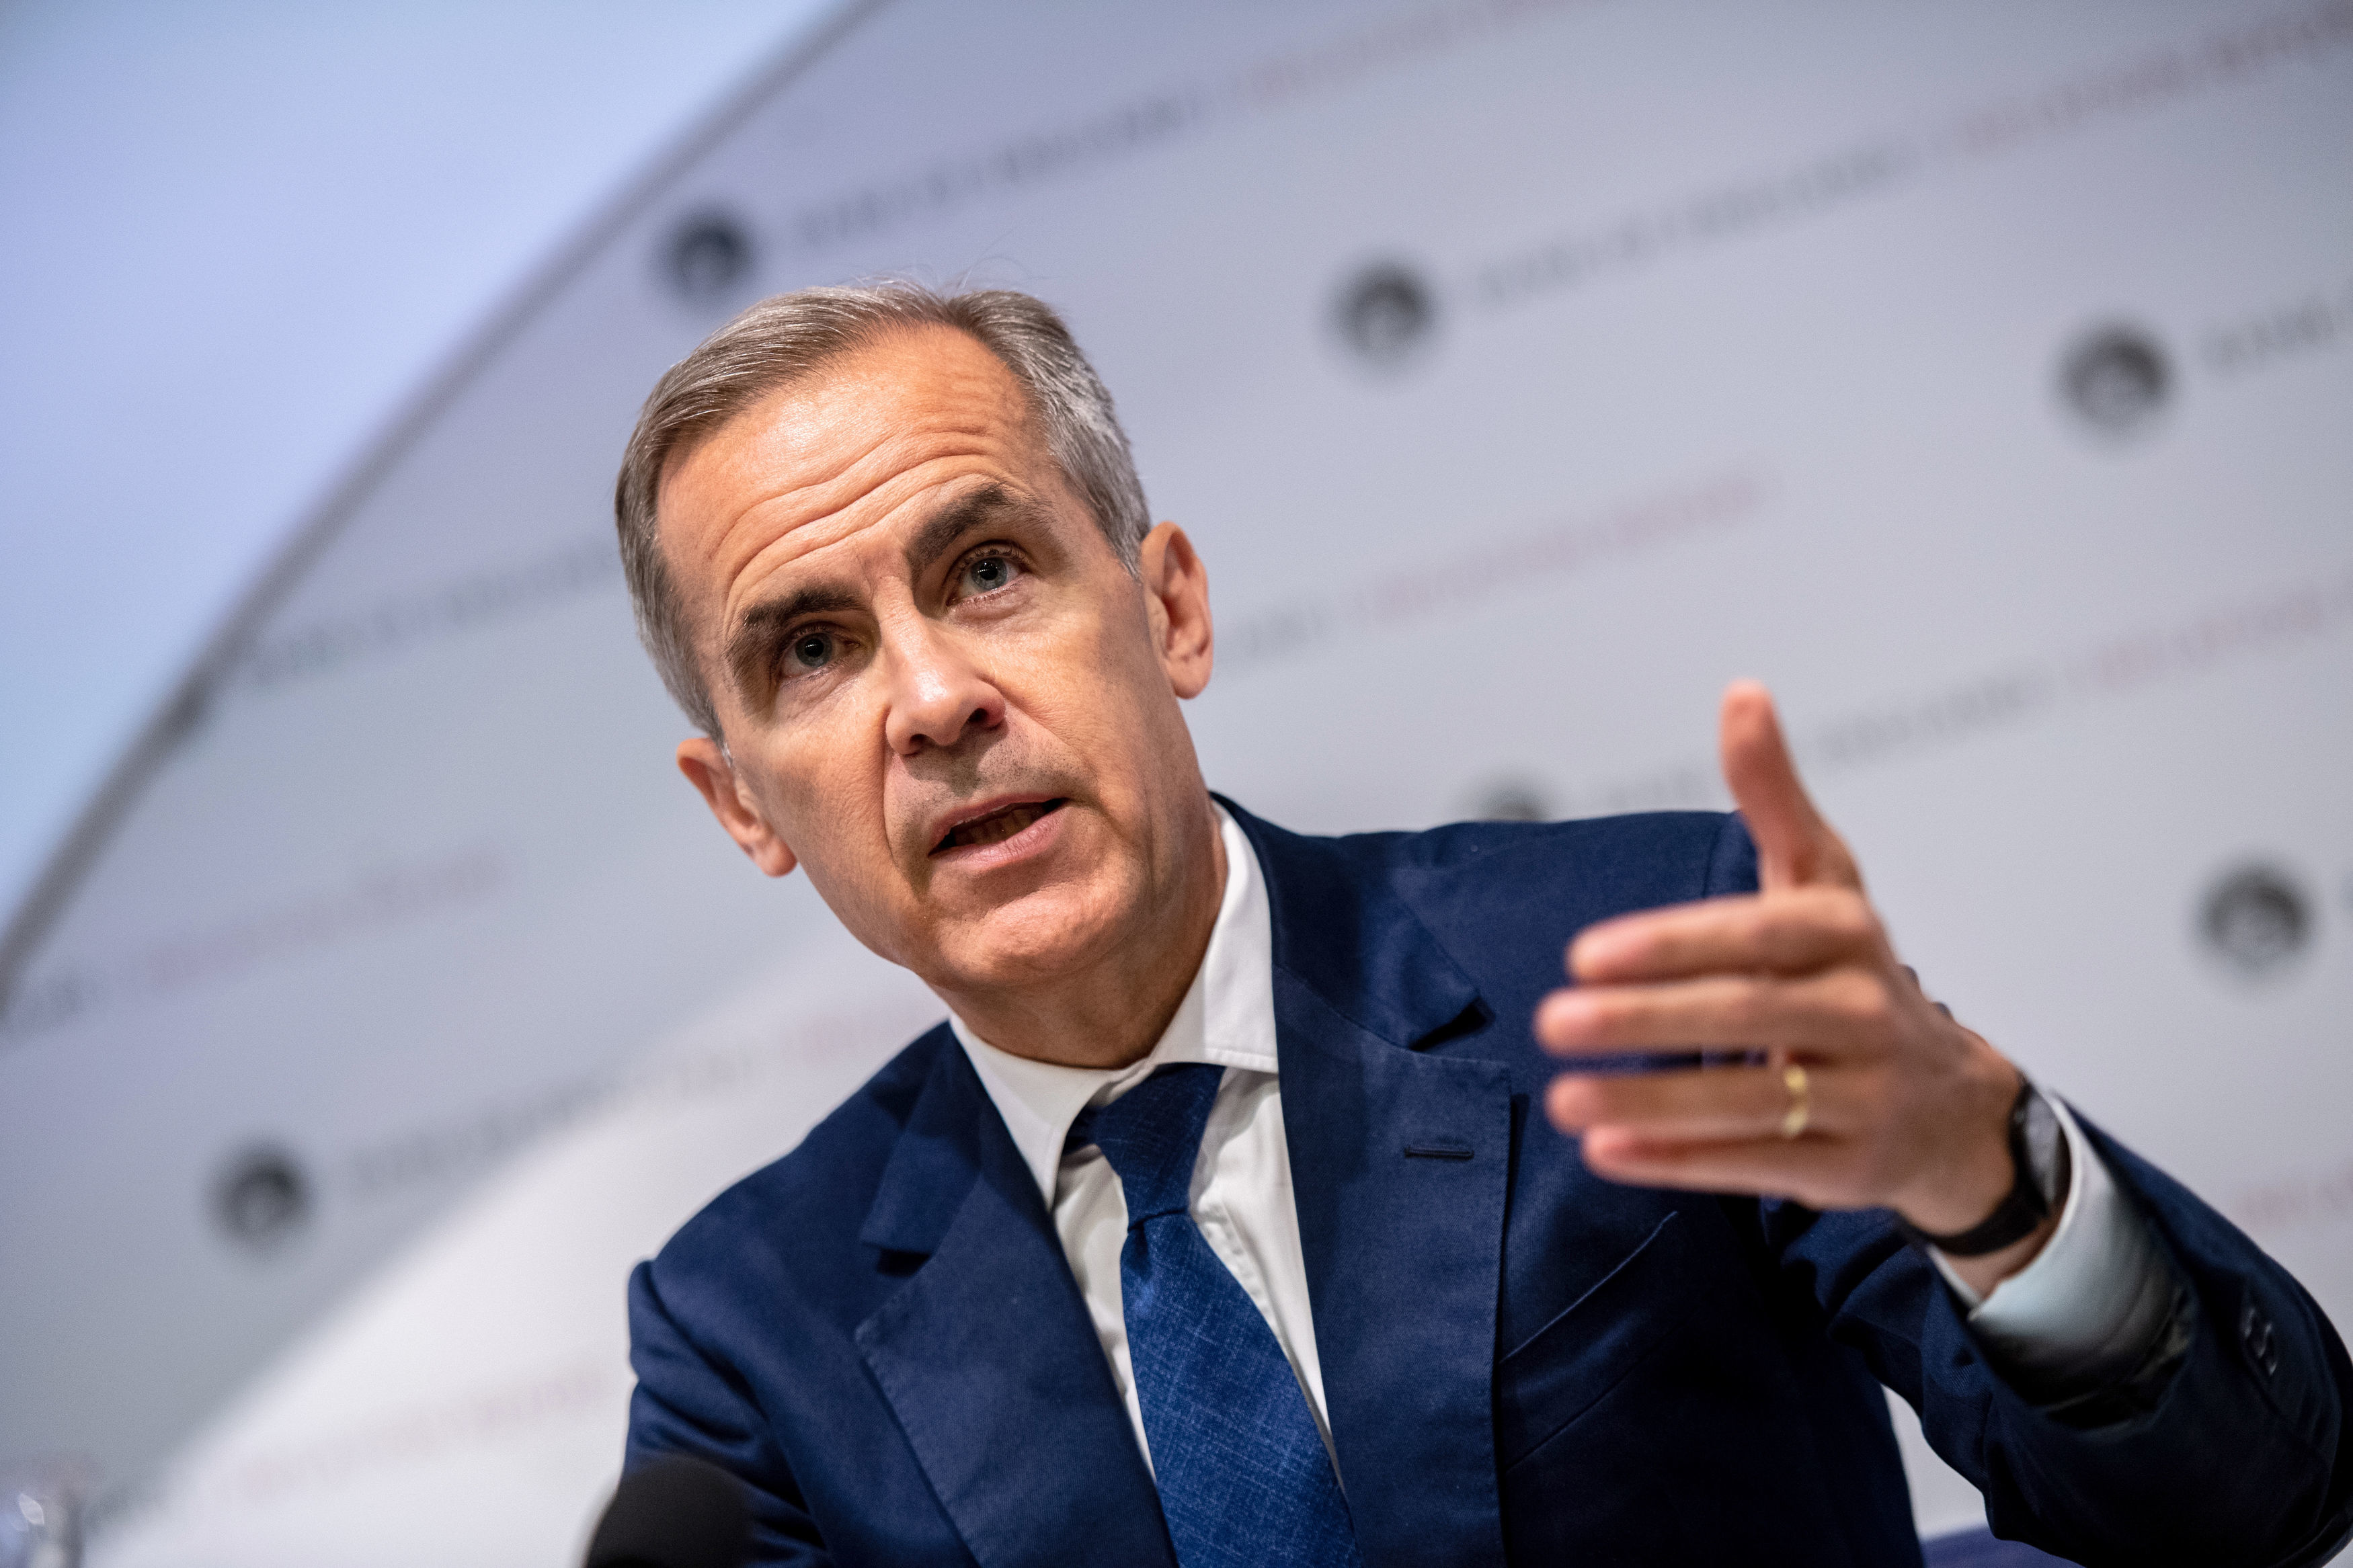 Governor of the Bank of England, Mark Carney, speaking at the Bank of England interest rate decision and inflation report press conference at the Bank of England in London. (Chris J Ratcliffe/PA)